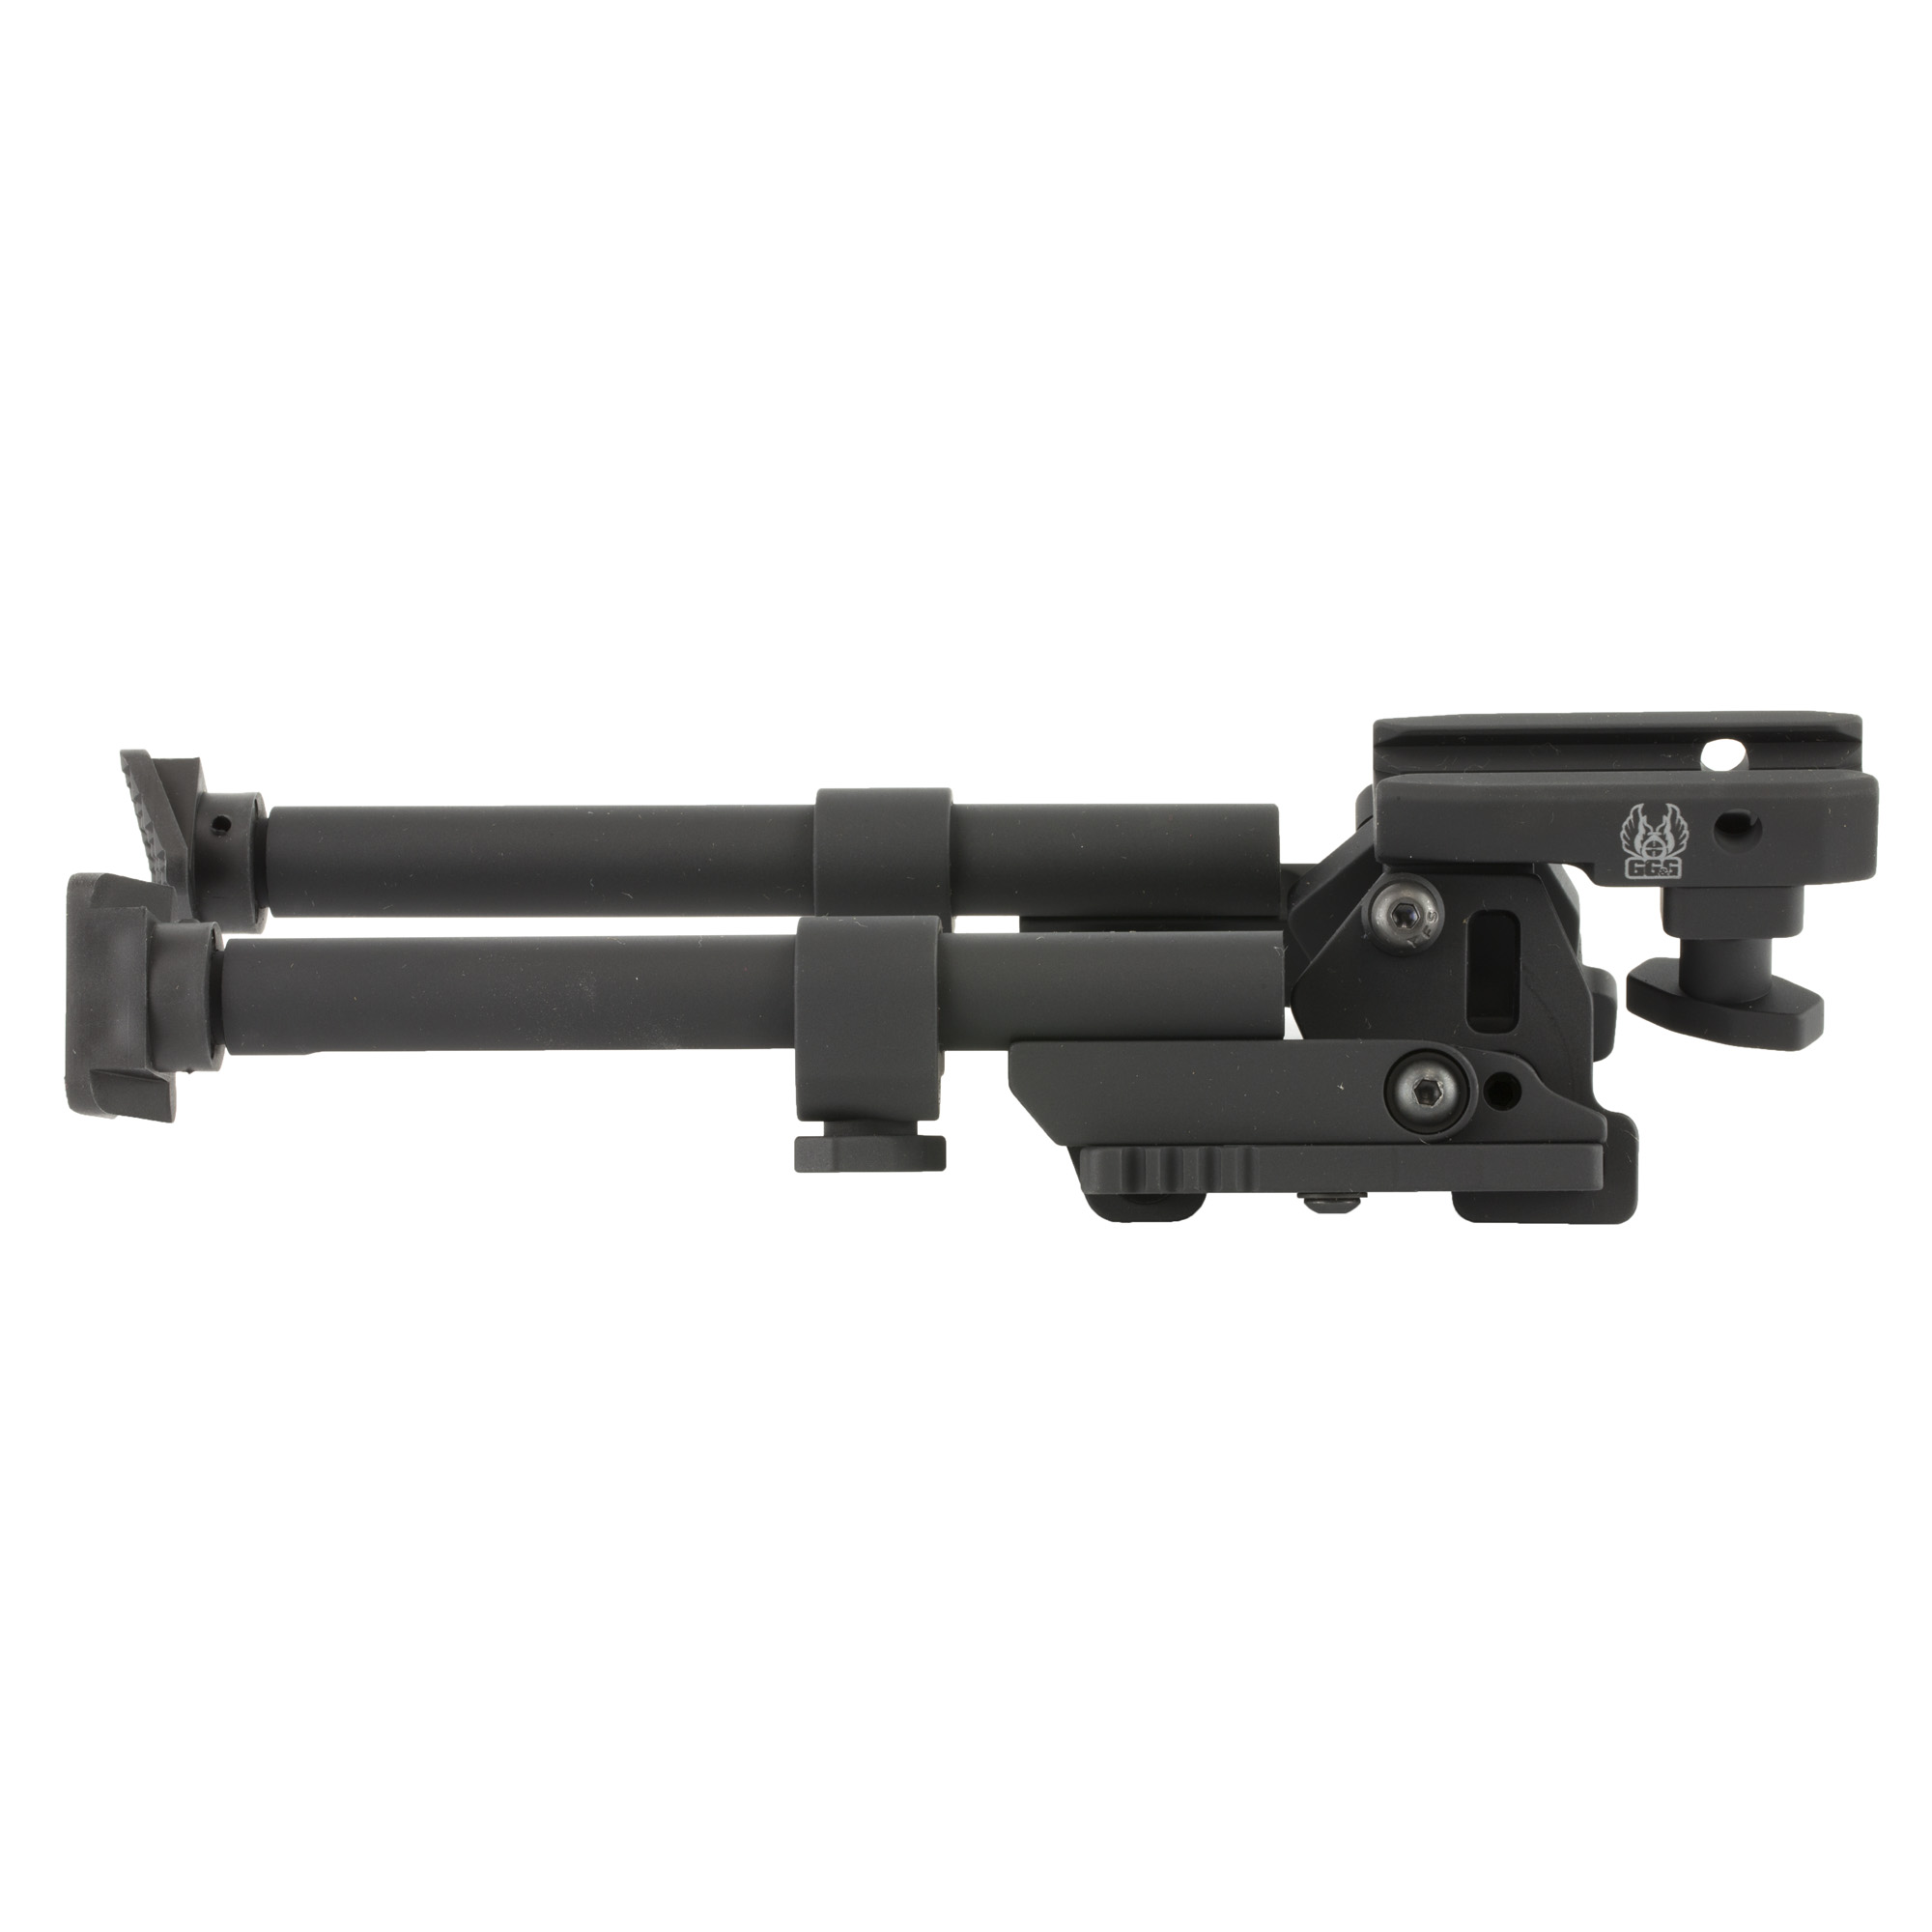 """GG&G's LCB-3 Heavy Duty Tactical Bipod (Large Caliber Bipod) does not pan"""" or swivel but will provide a rock solid stable platform for big guns! It is designed and manufactured to accommodate large caliber firearms including .50BMG. All connection points are designed and manufactured for extreme duty and the design incorporates fully enclosed locking engagements and enlarged rail interface. When the Tactical Bipod legs are deployed"""" they can be independently adjusted from 7 7/8"""" to 10 1/2""""."""